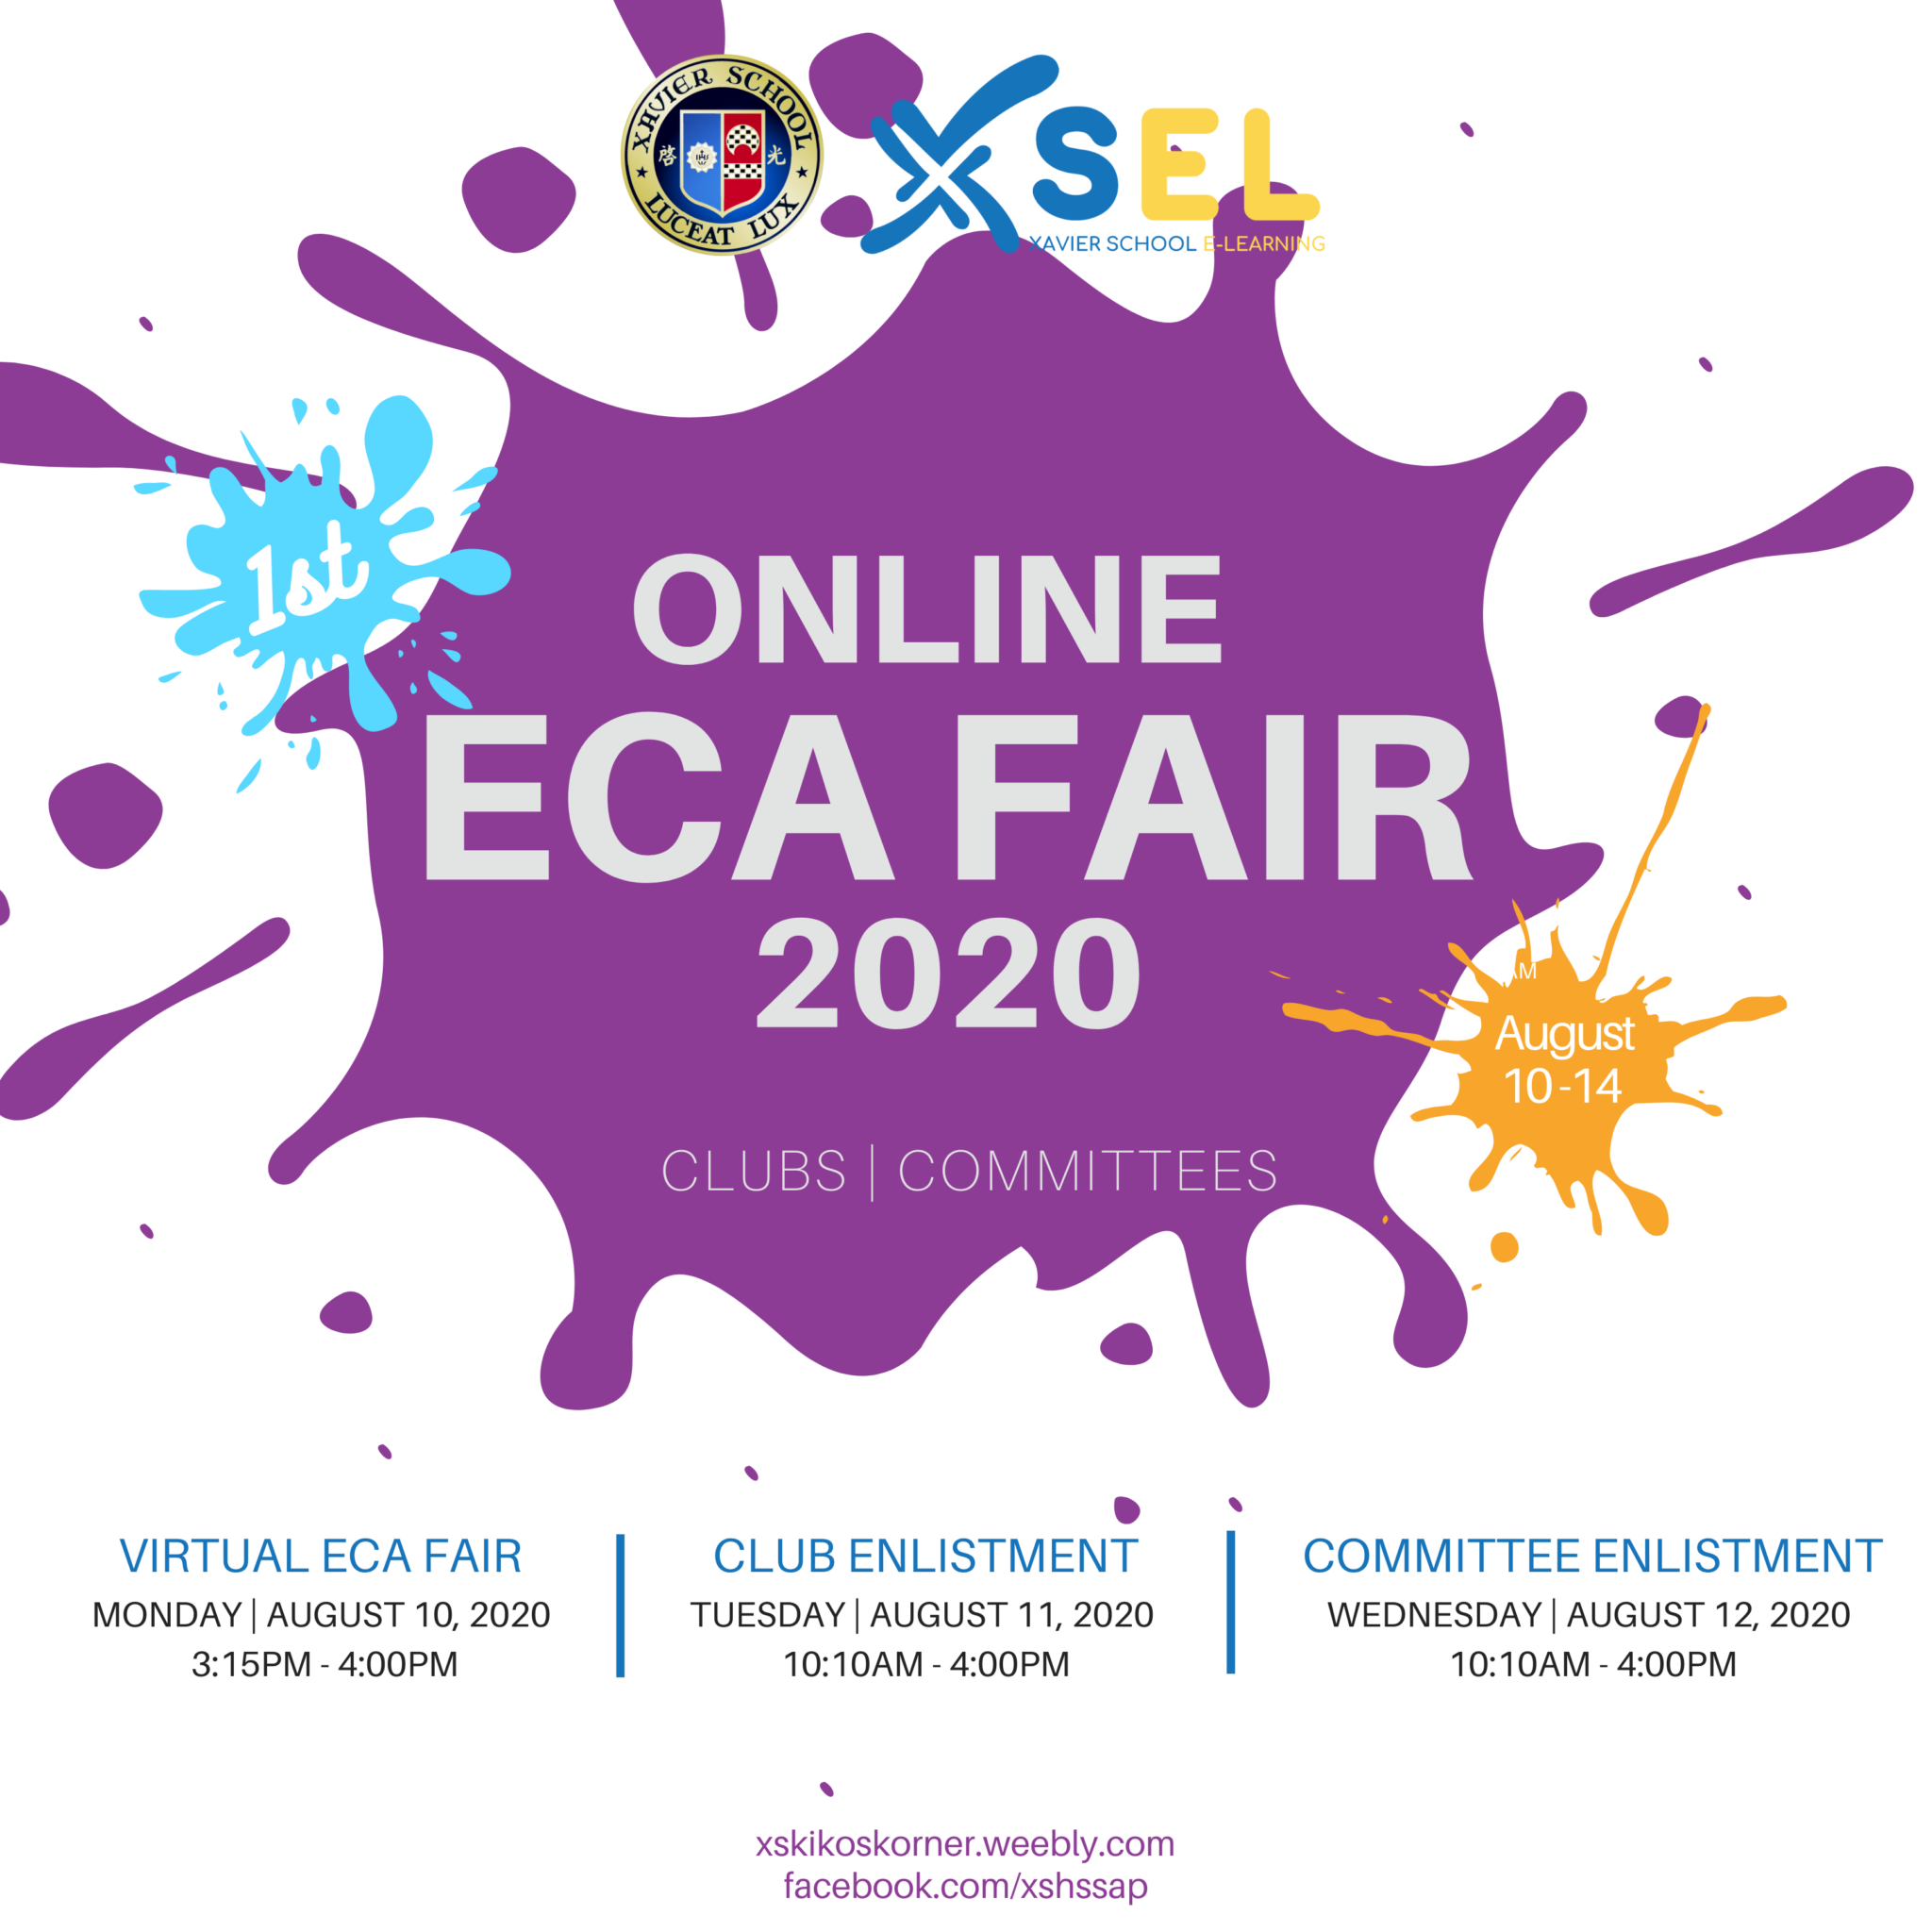 Xavier High School holds its first ever Virtual ECA Fair